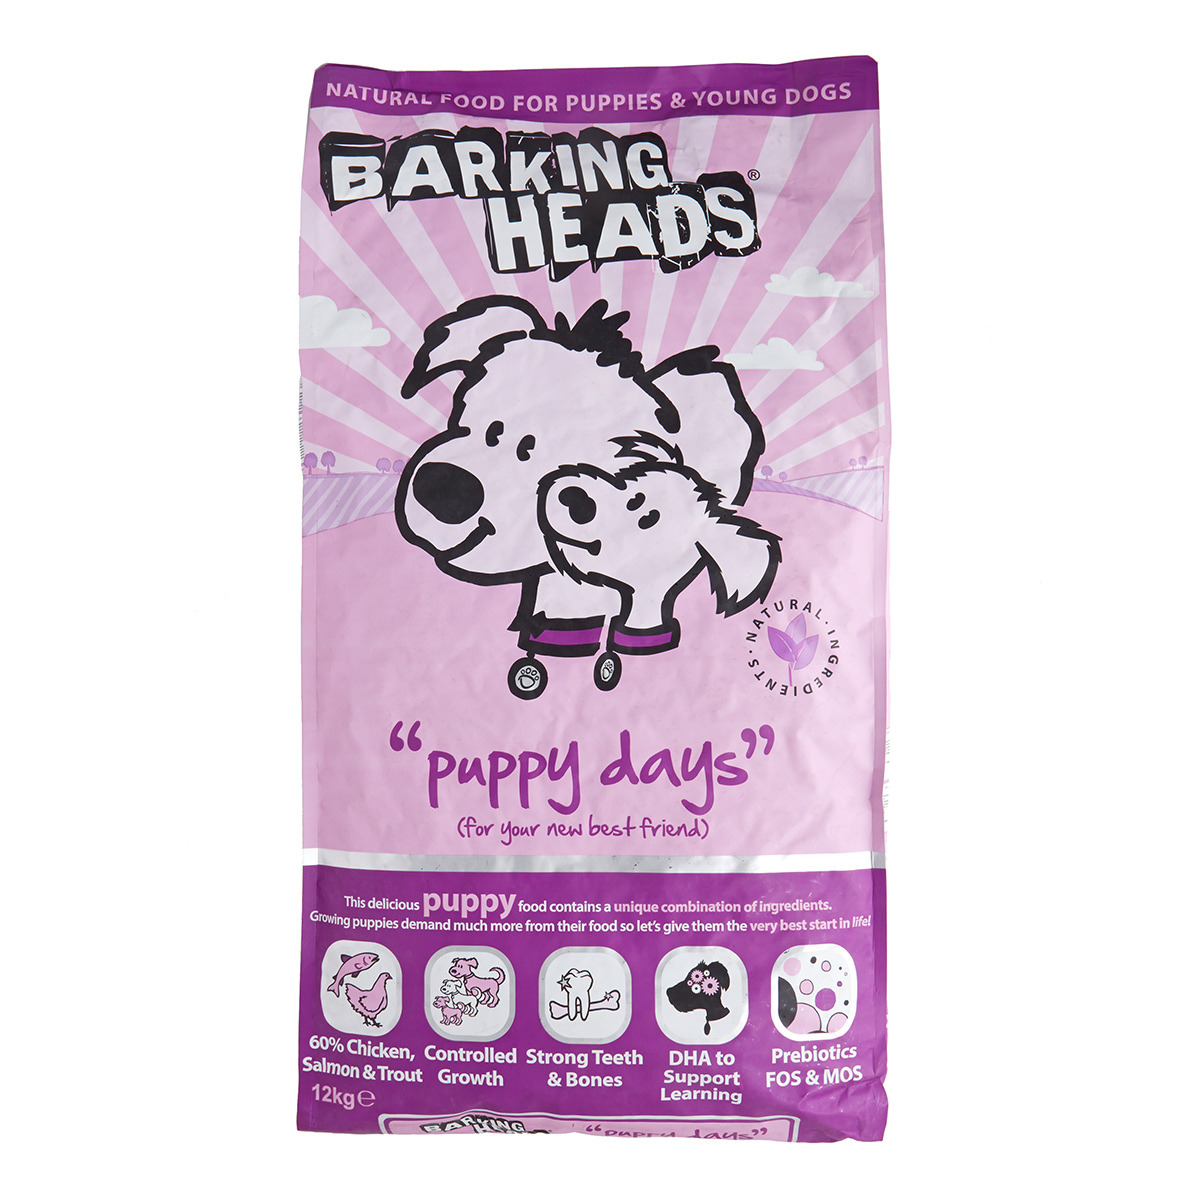 Barking Heads Puppy Days 12kg.